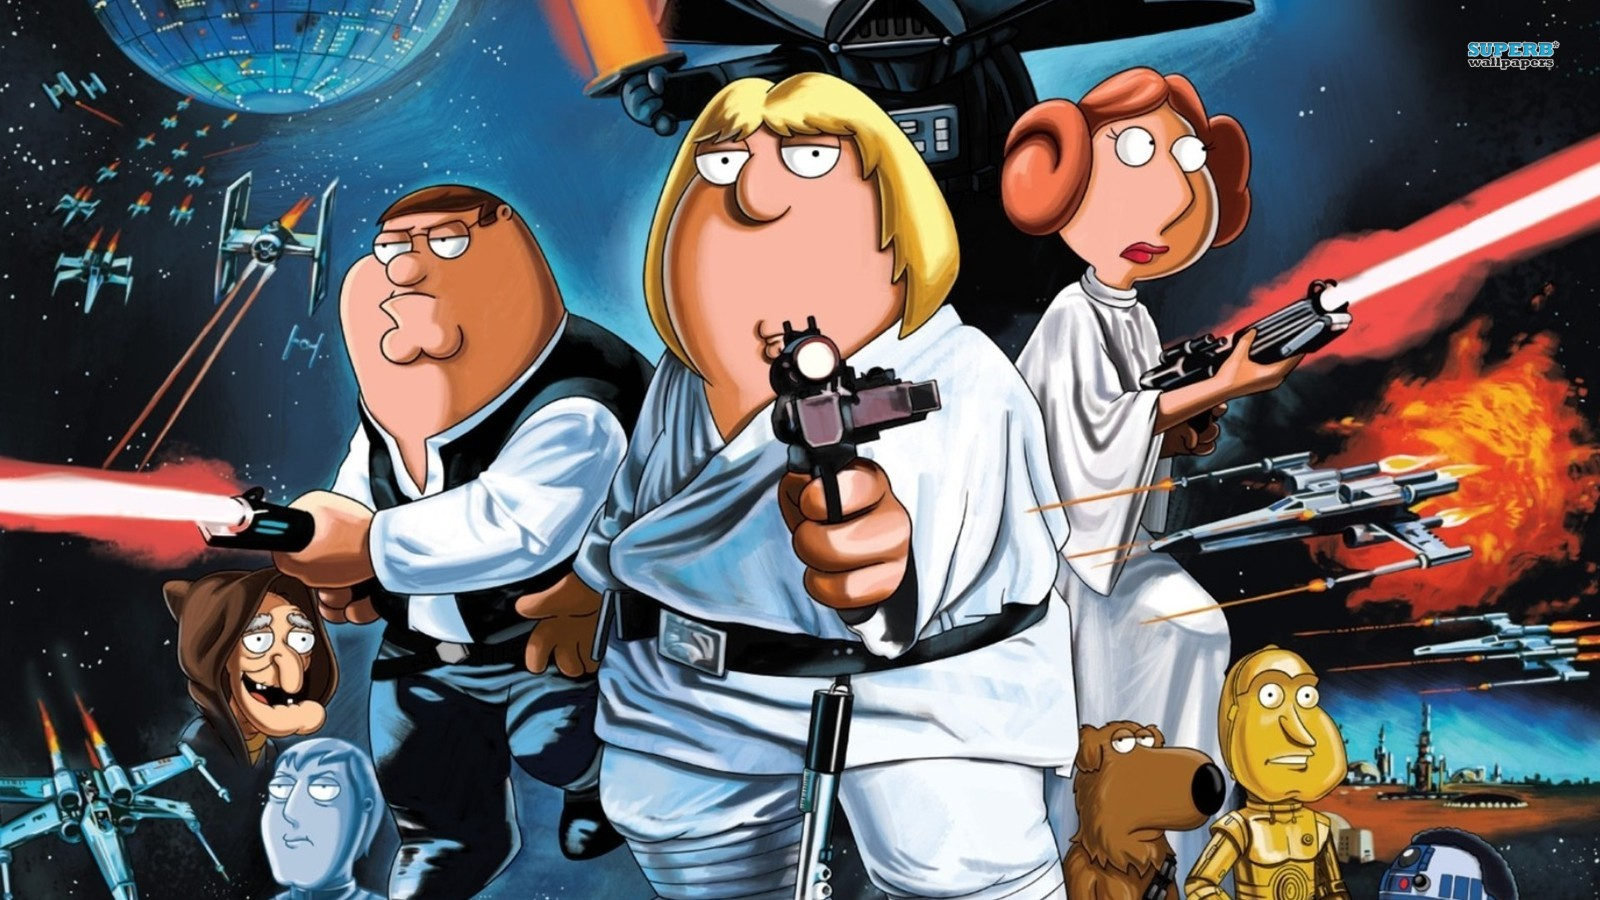 Family Guy Images Star Wars HD Wallpaper And Background Photos